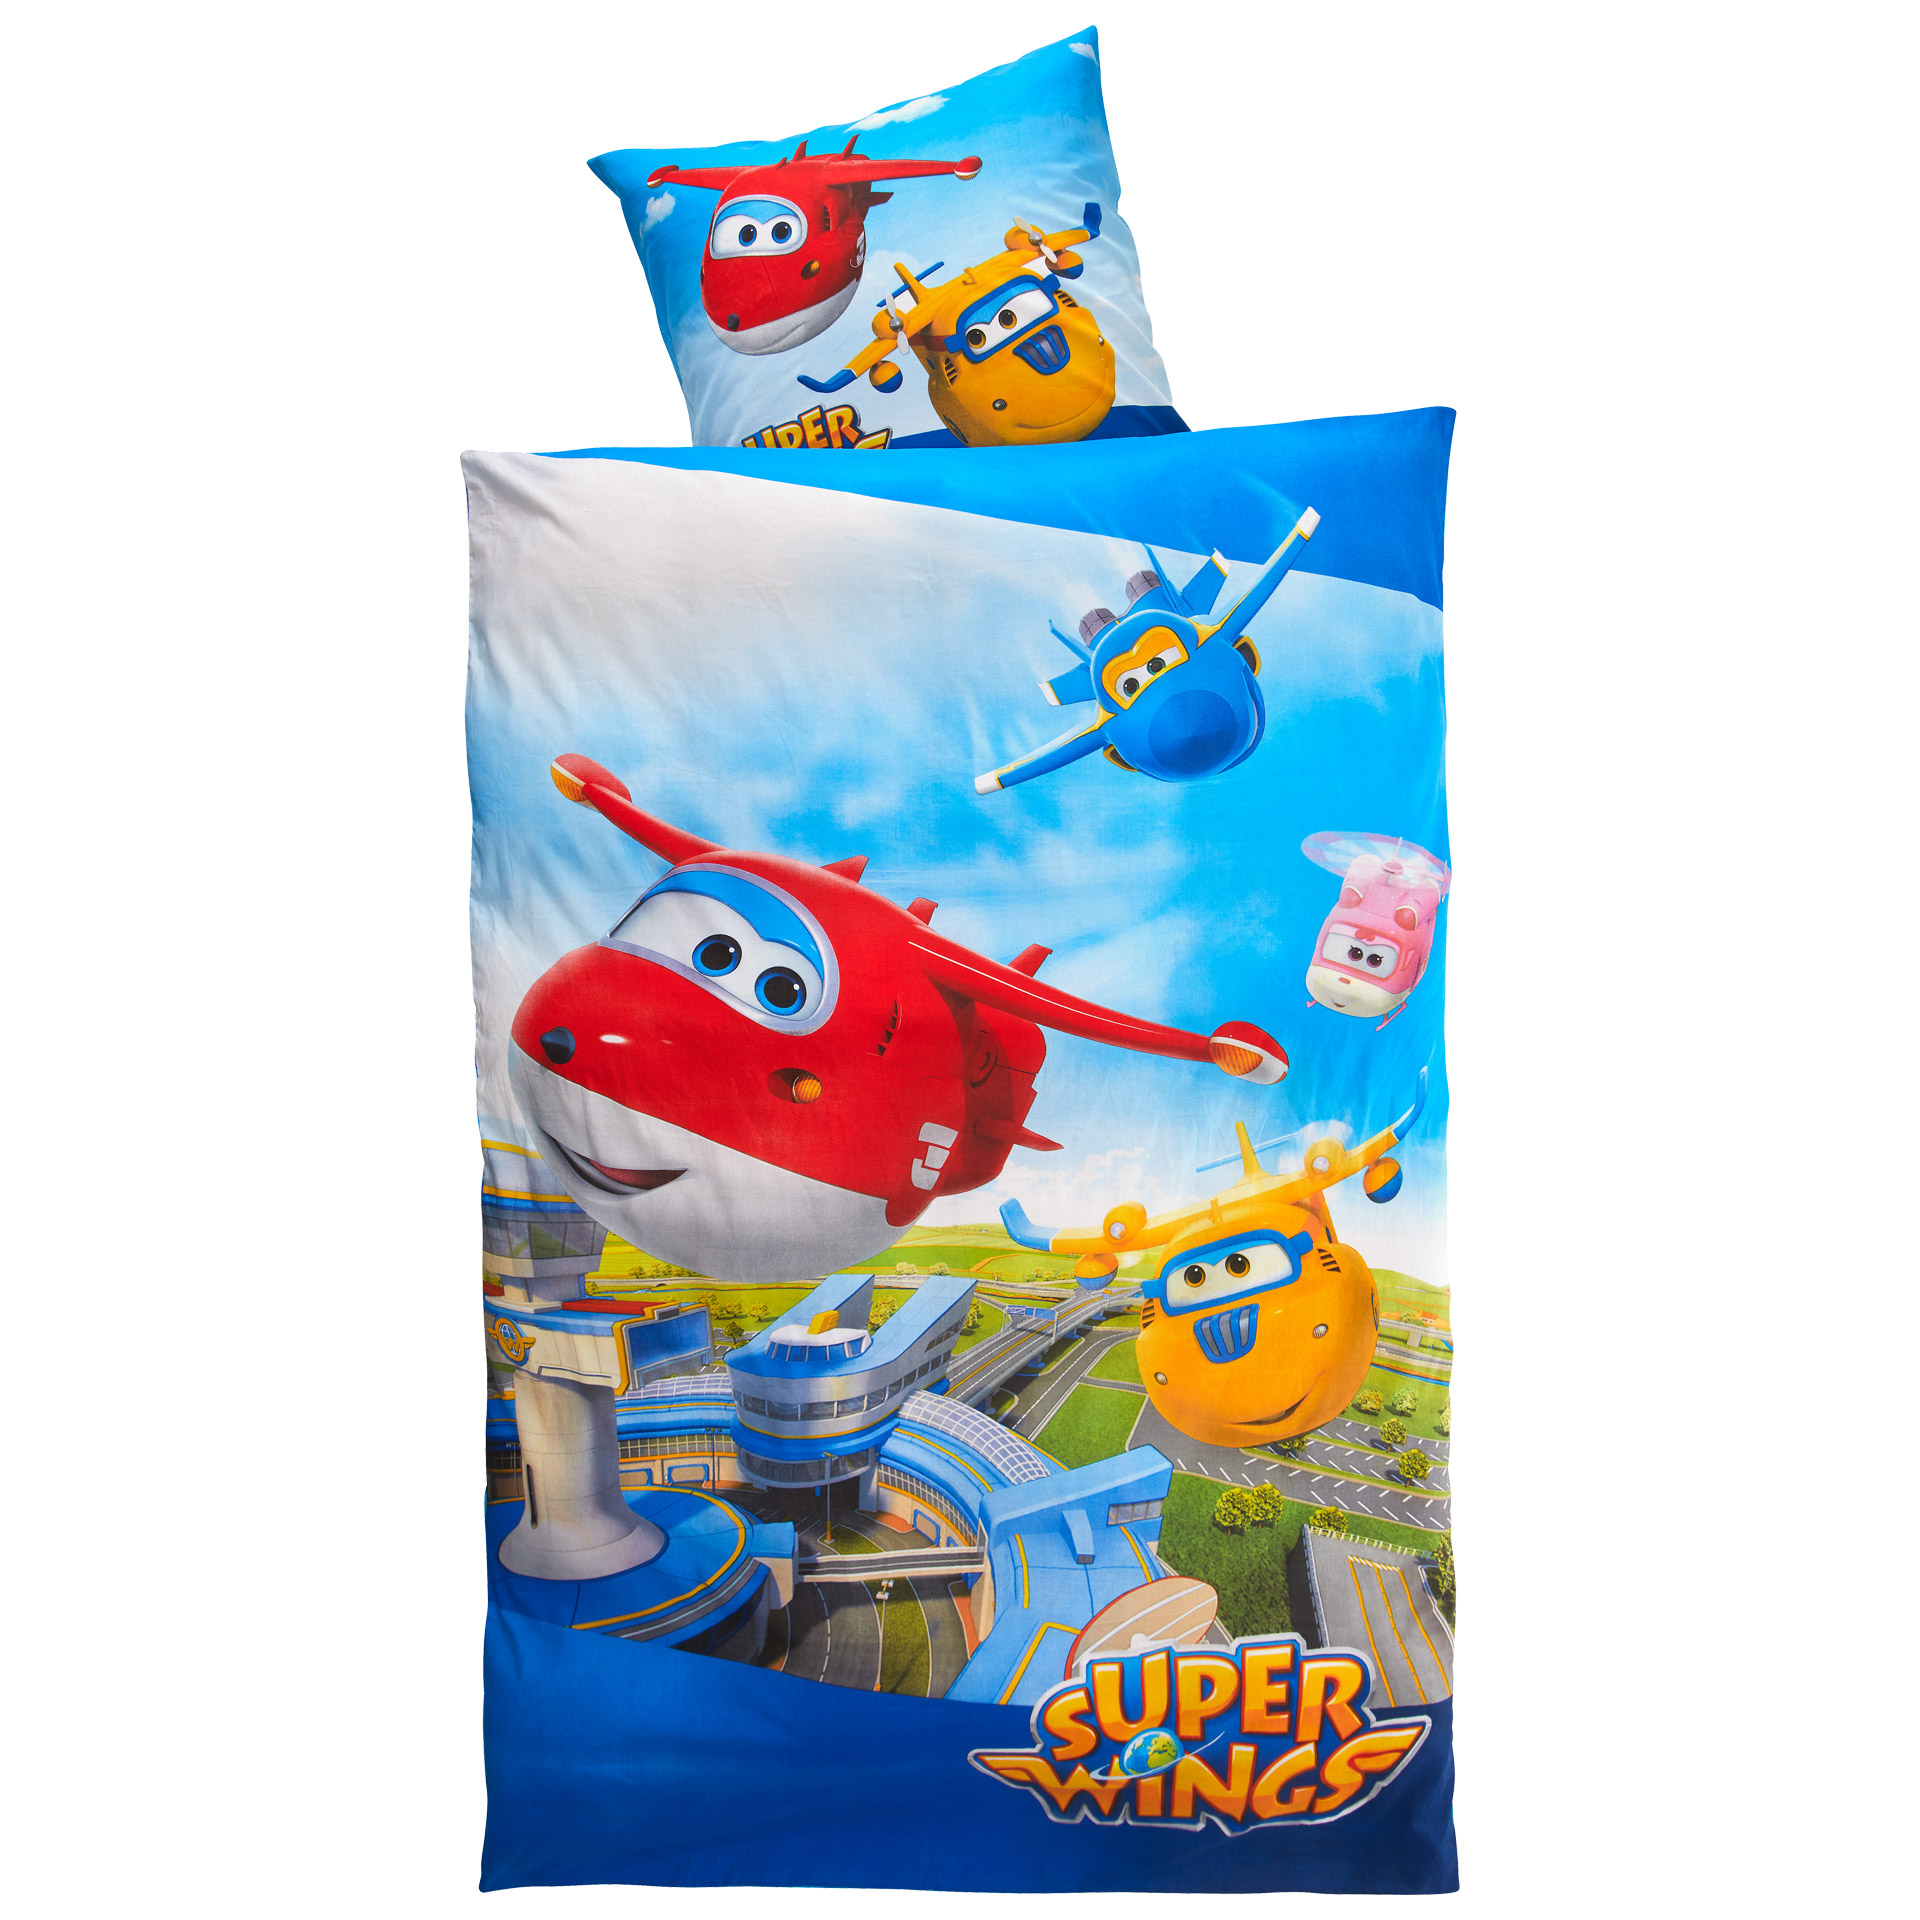 Kinderbettwäsche Super Wings (135x200)